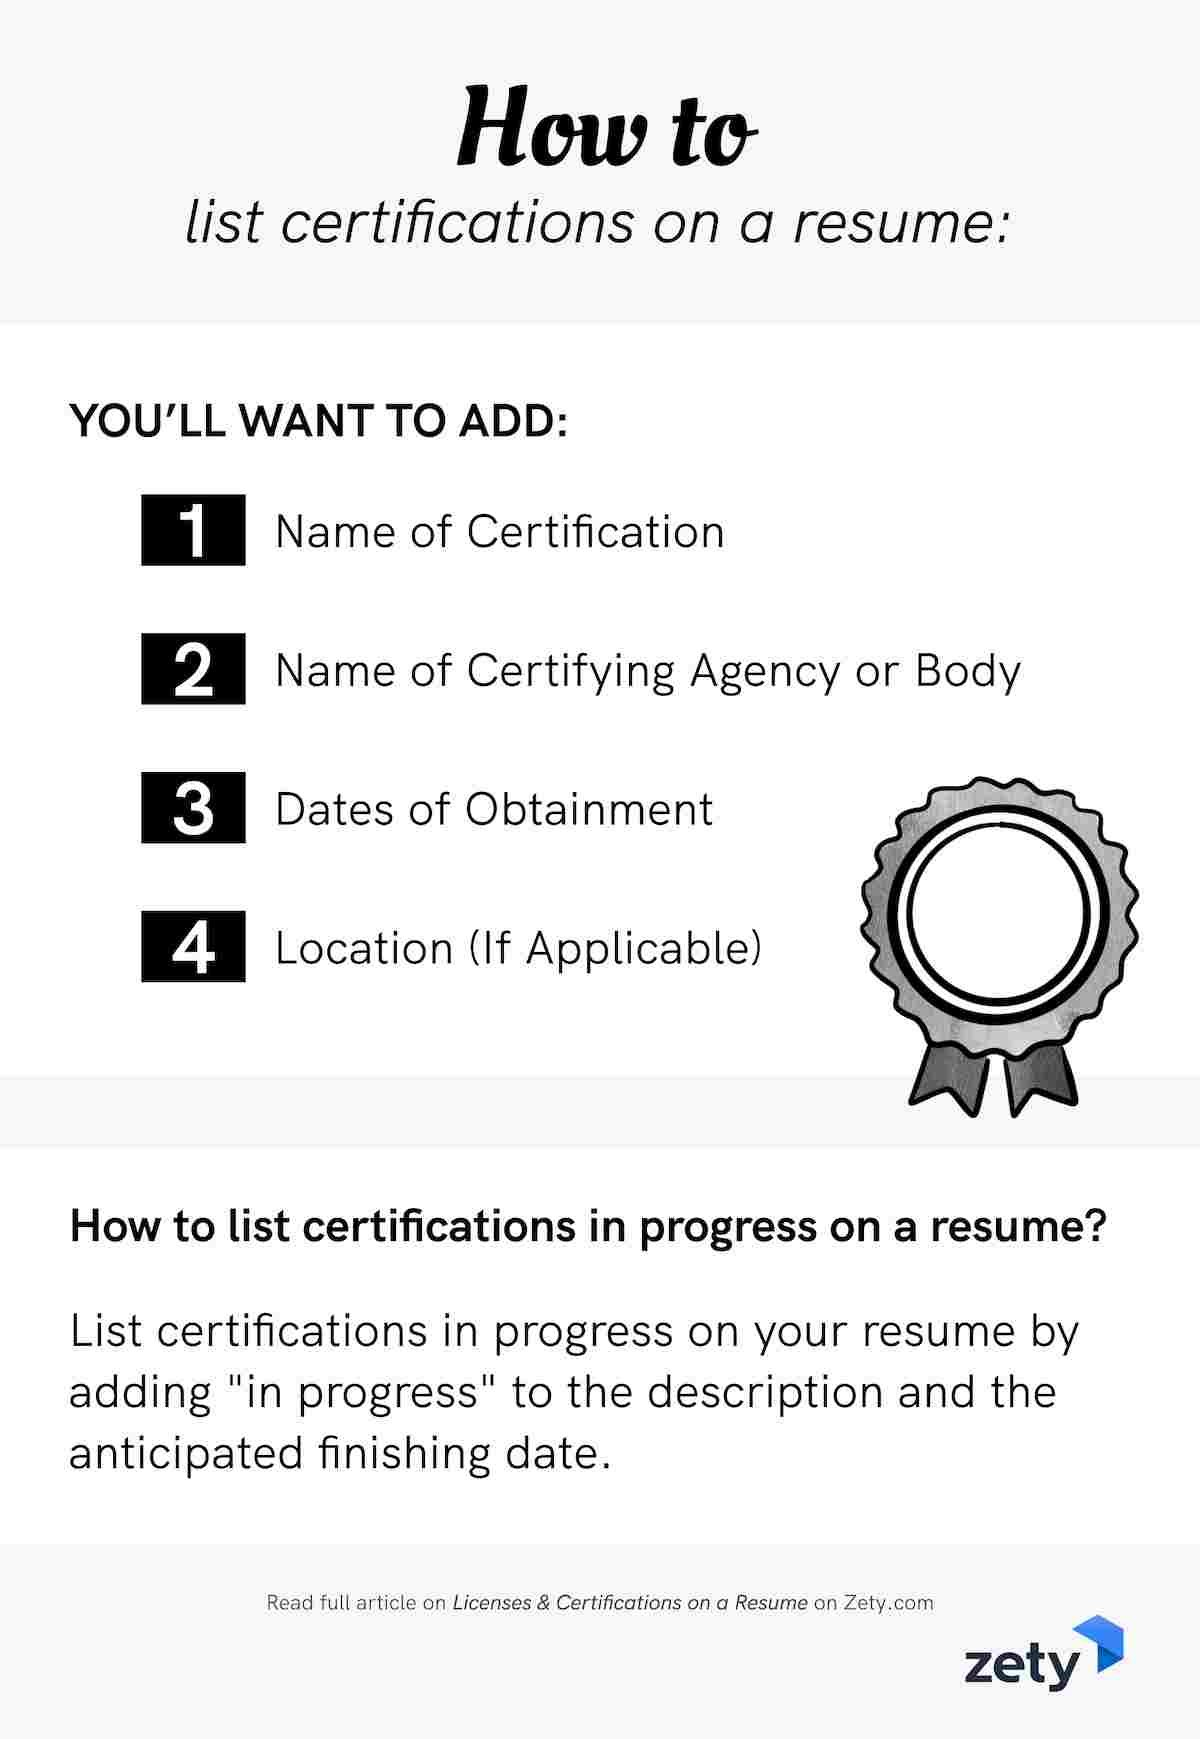 Licenses and certifications on a resume example